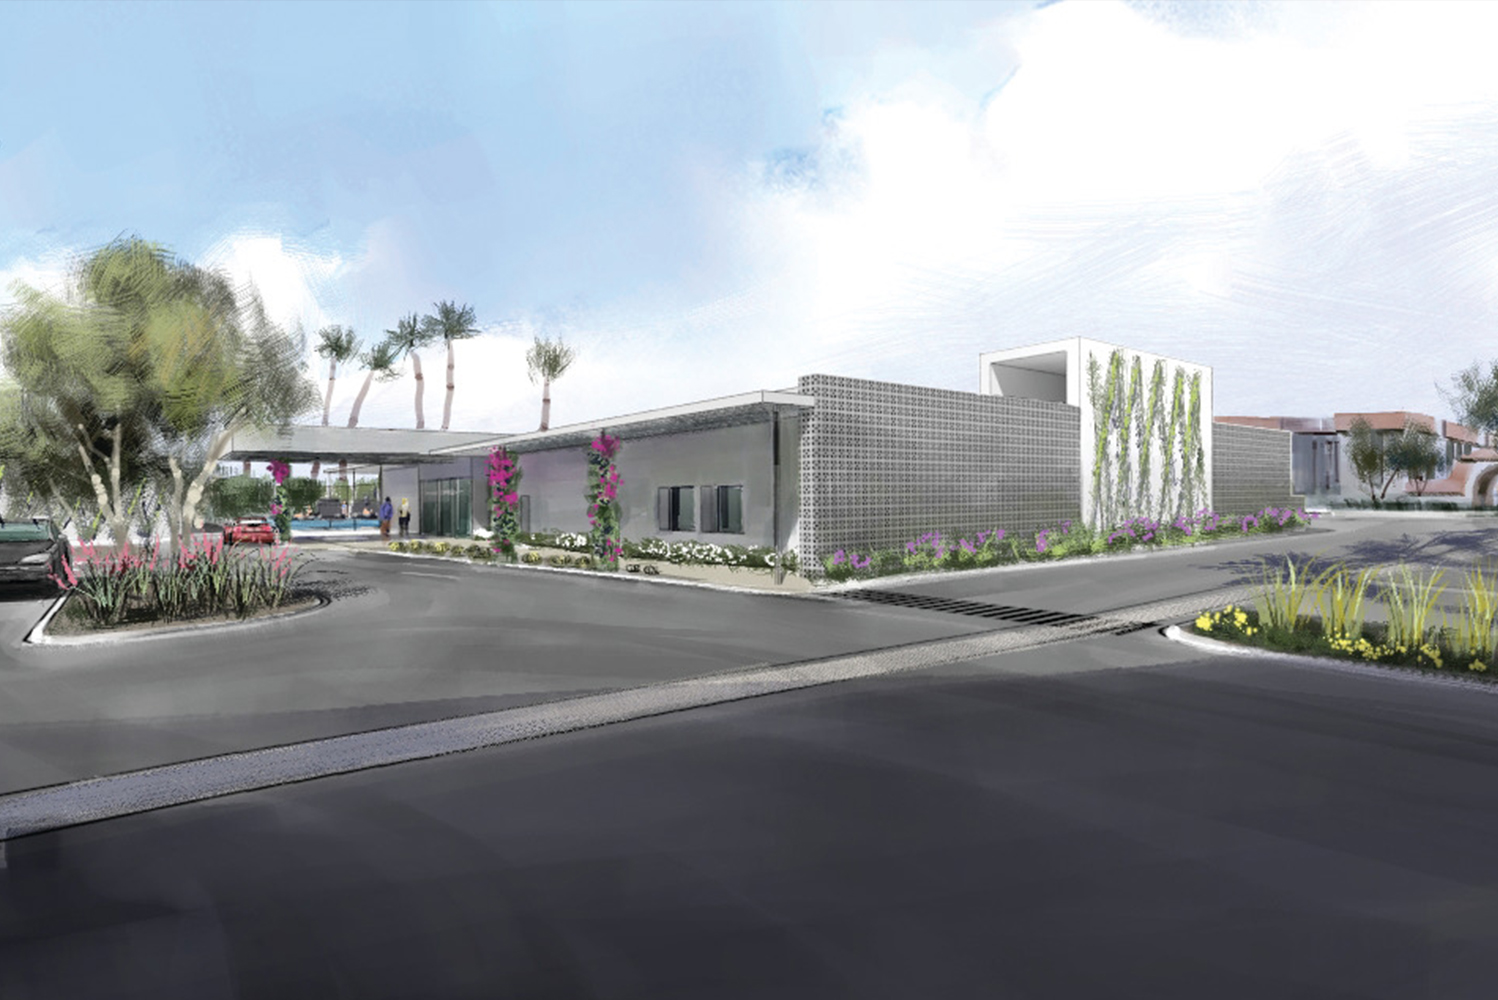 Scottsdale Inn is currently undergoing a $12 million renovation and will debut as Hotel Adeline in early 2018.